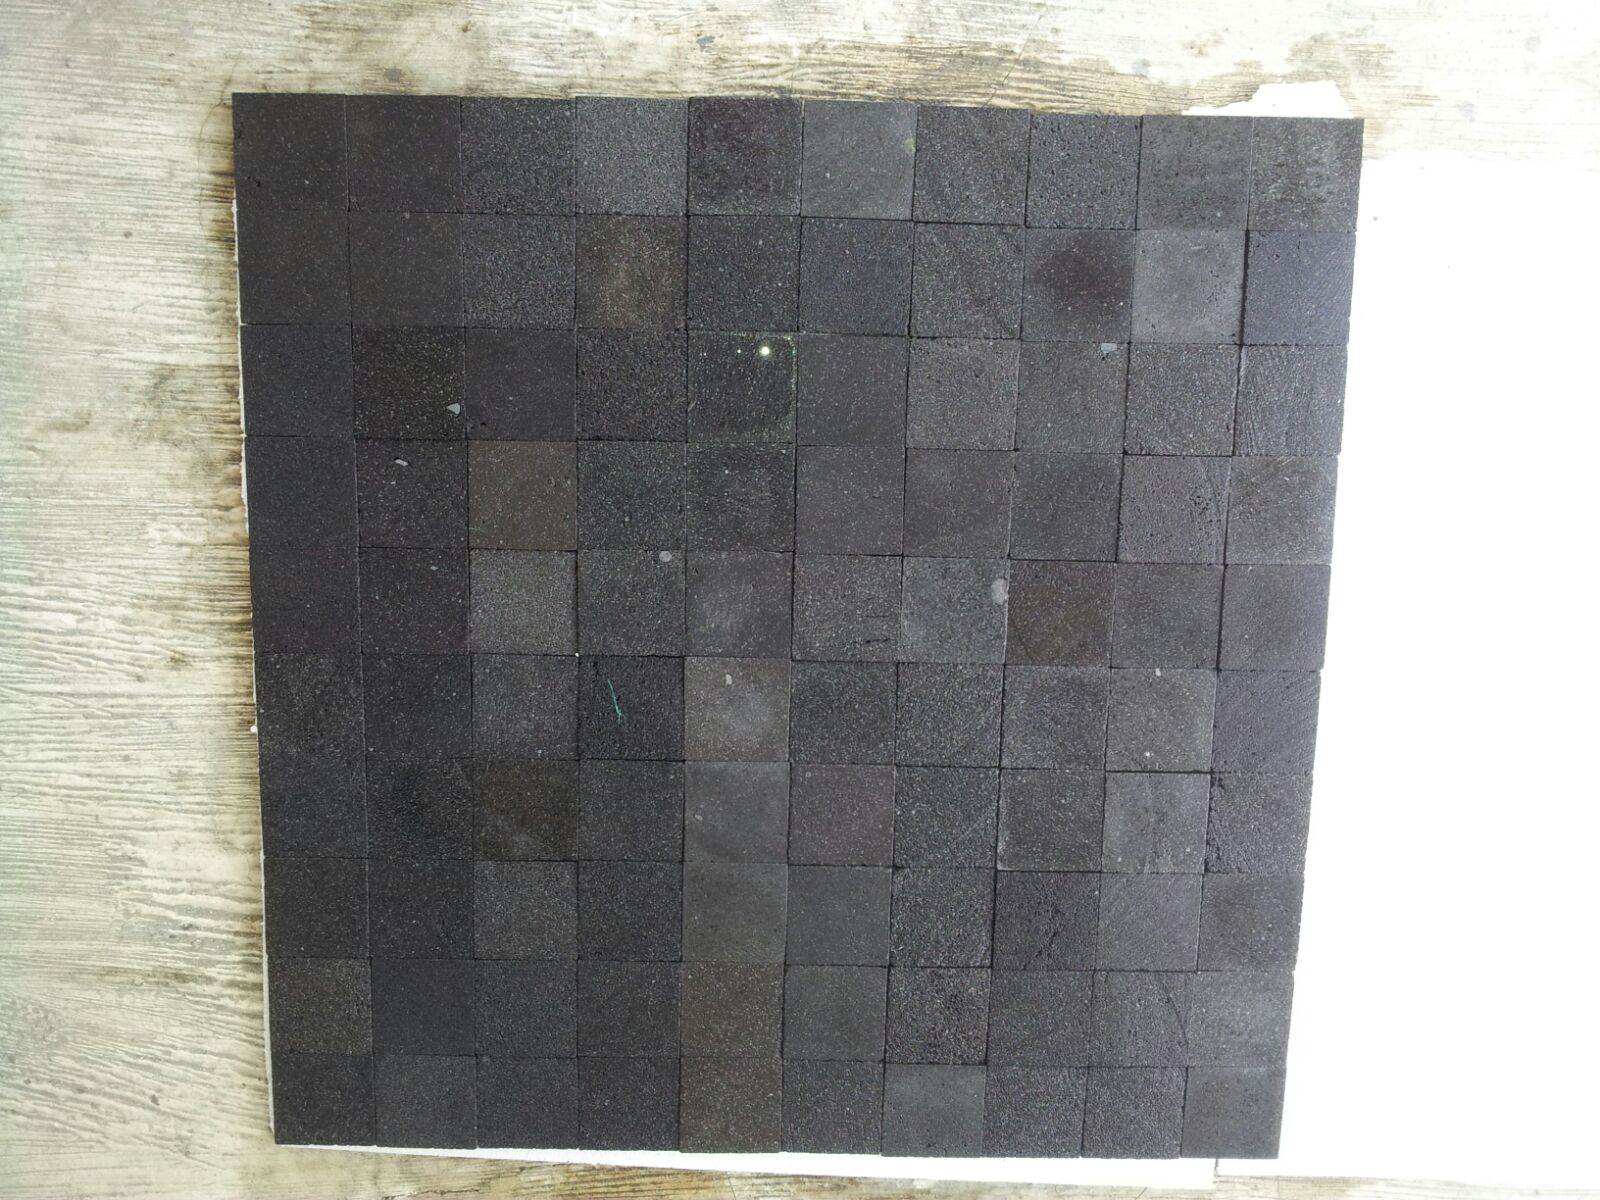 Black Lava Volcanic Lavastone Tiles & Slabs  Pedra Hitam Stone Bali Black Basalt for Swimming Pool Tiles